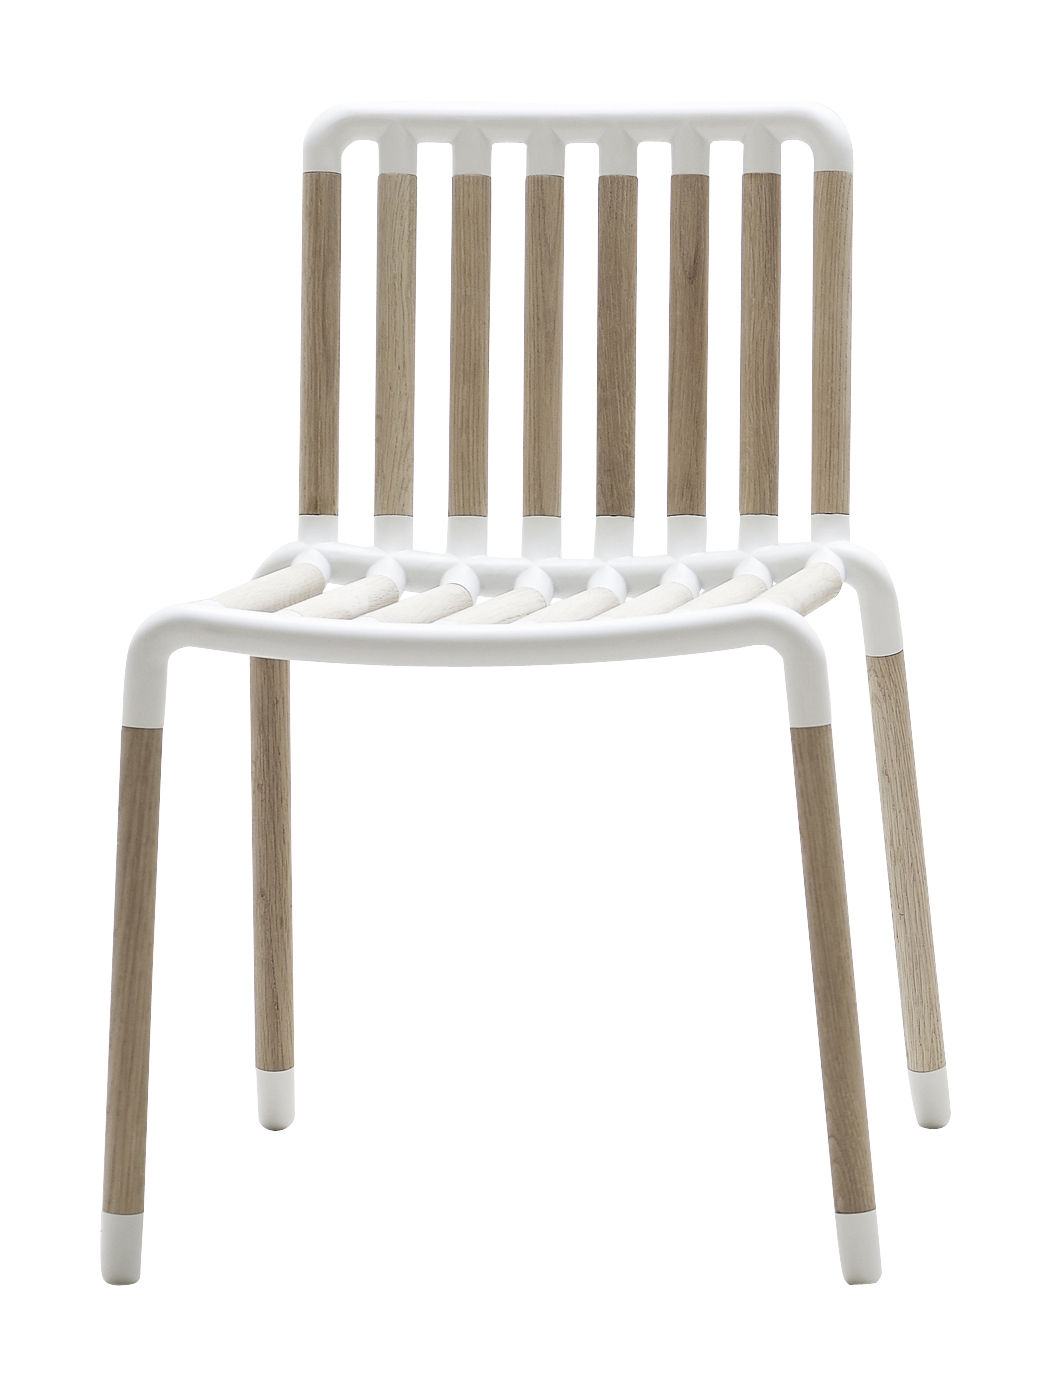 Furniture - Chairs - Tube Chair Chair by Hay - Natural wood / White - Lacquered aluminium, Oak